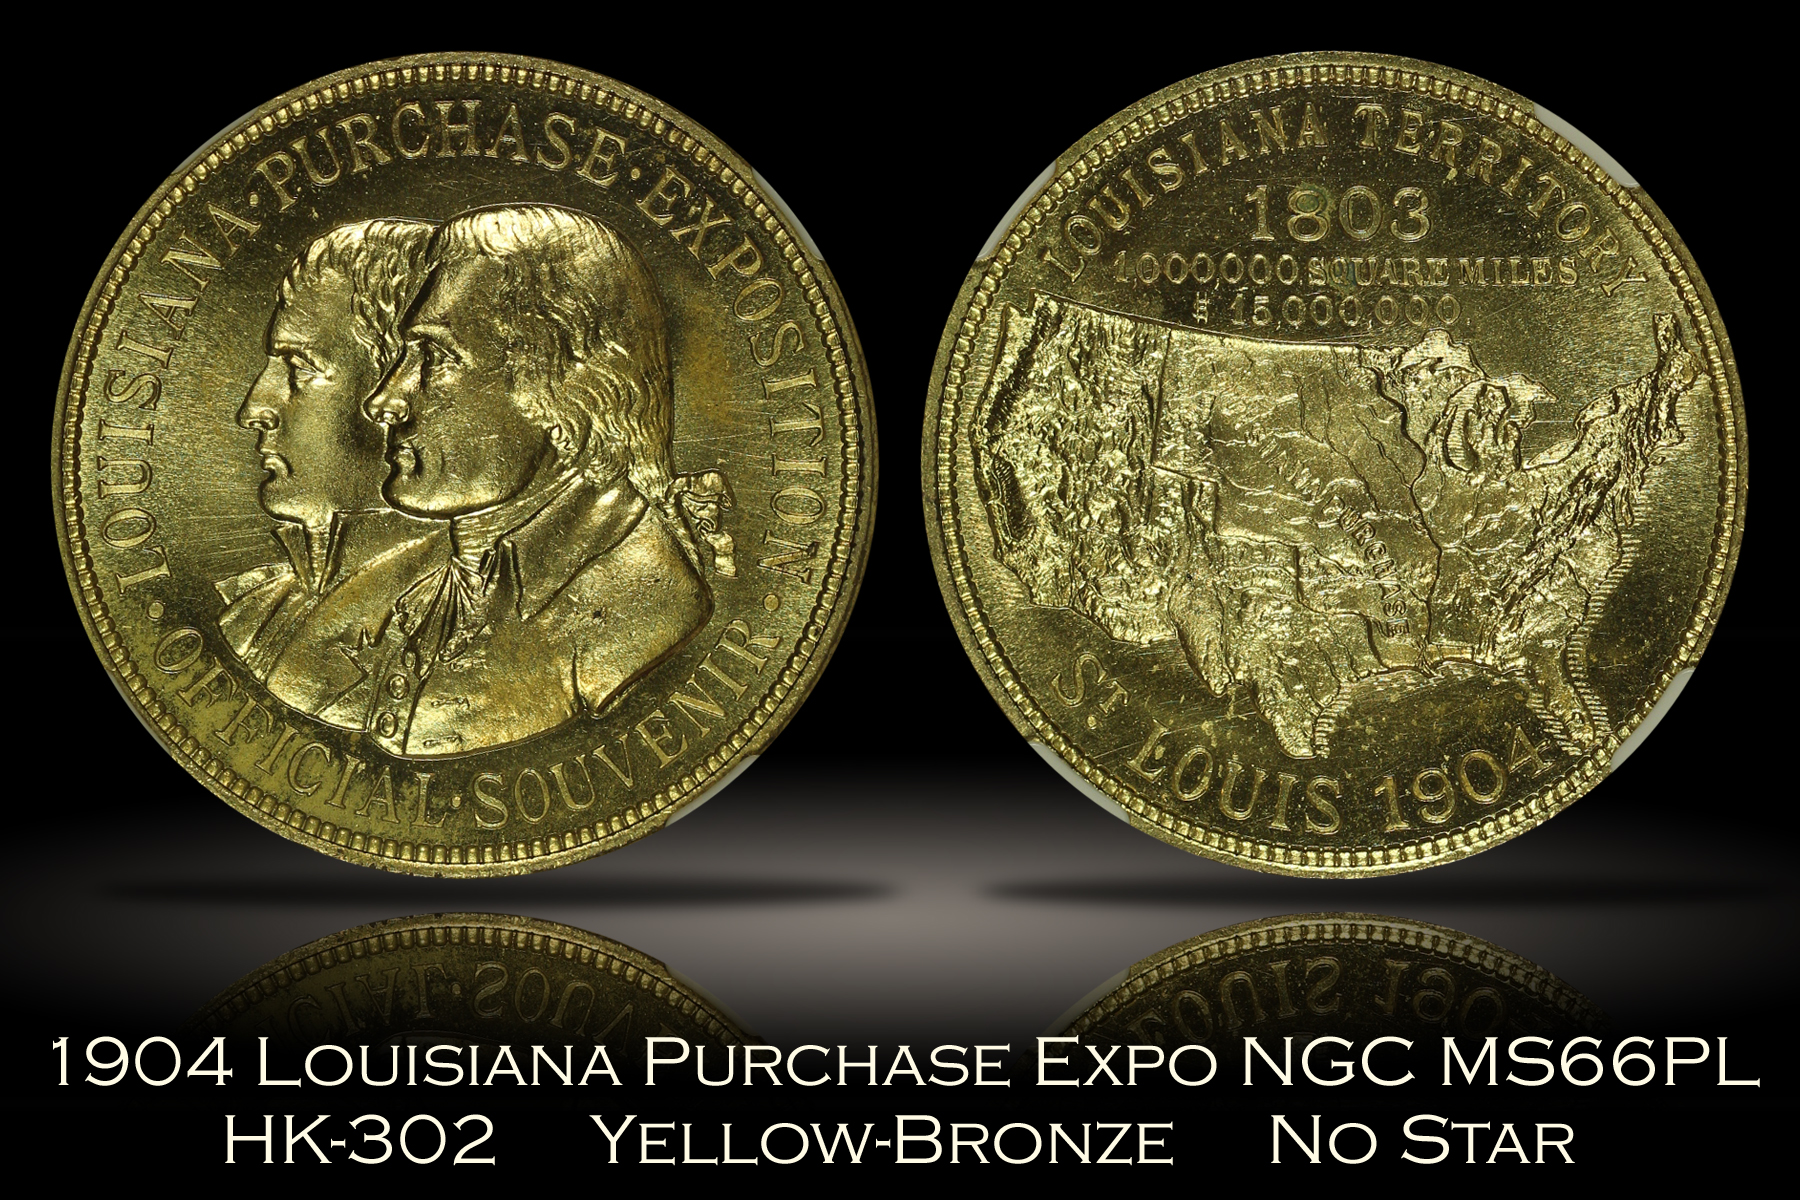 1904 Louisiana Purchase Expo Official Medal HK-302 No Star Error NGC MS66PL